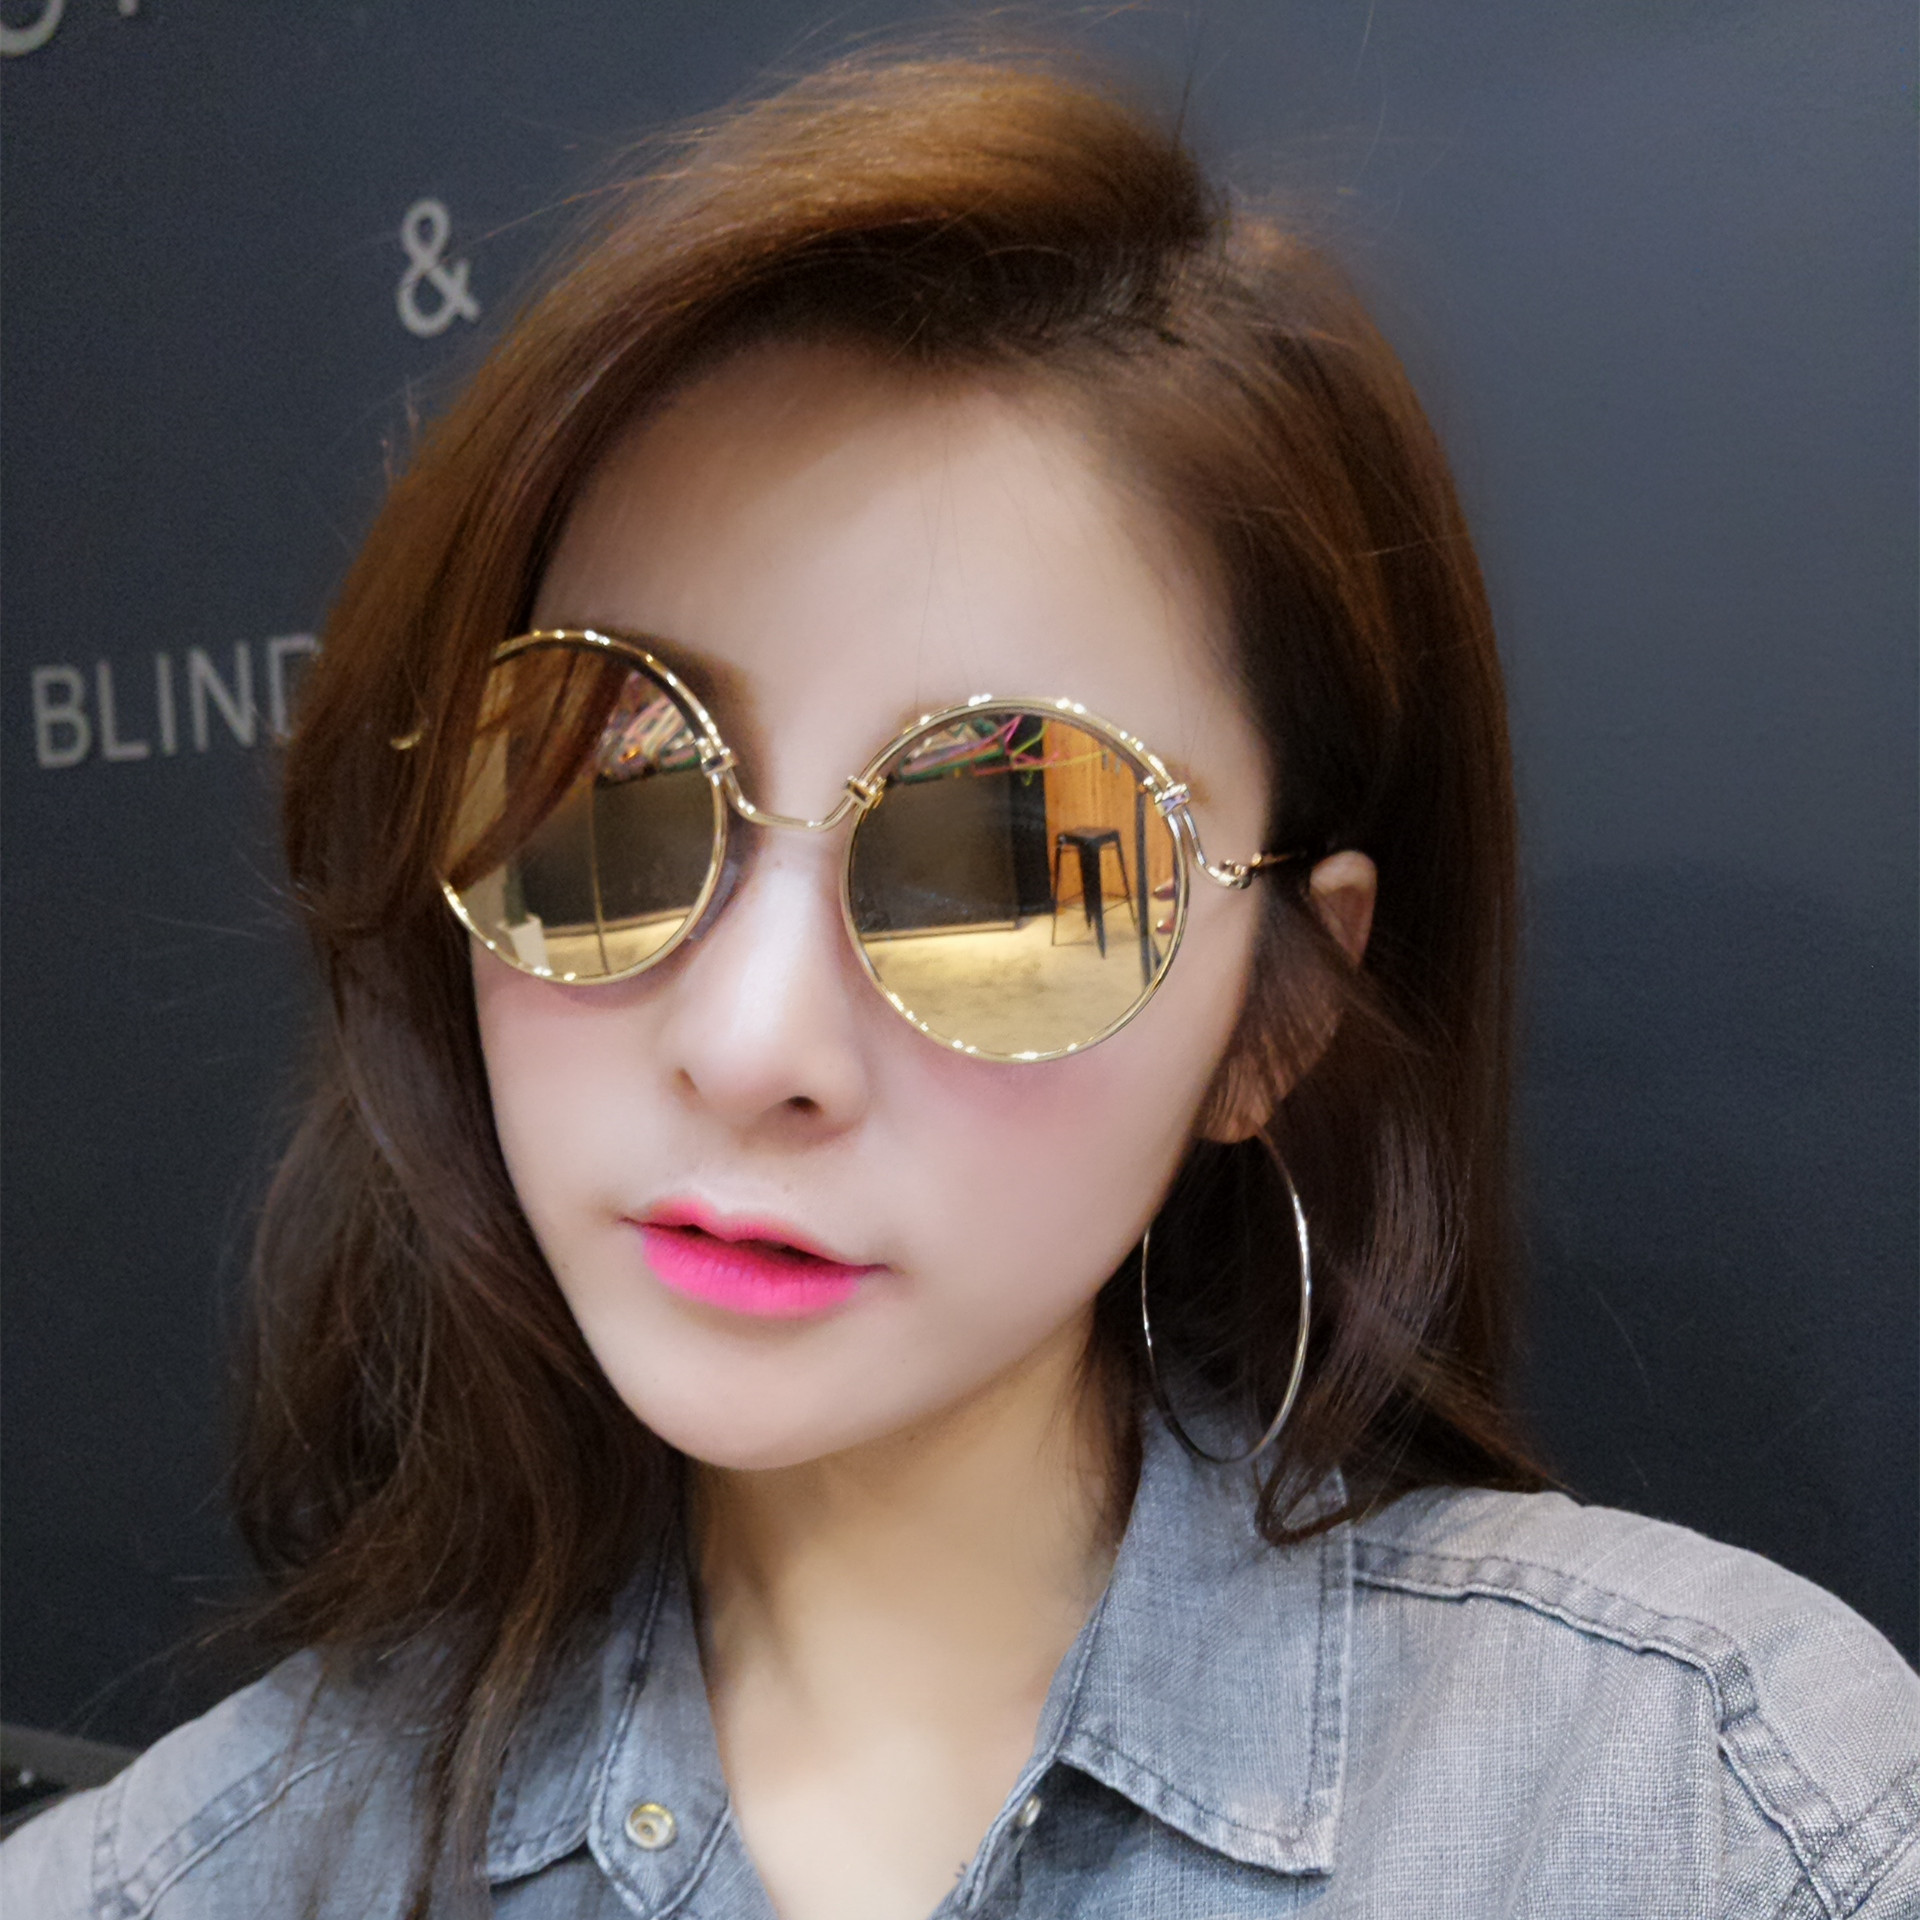 053a3fa21af Large round frame sunglasses female tide 2016 korean version of the upscale  polariscope round sunglasses for men and women face garde personality eyes